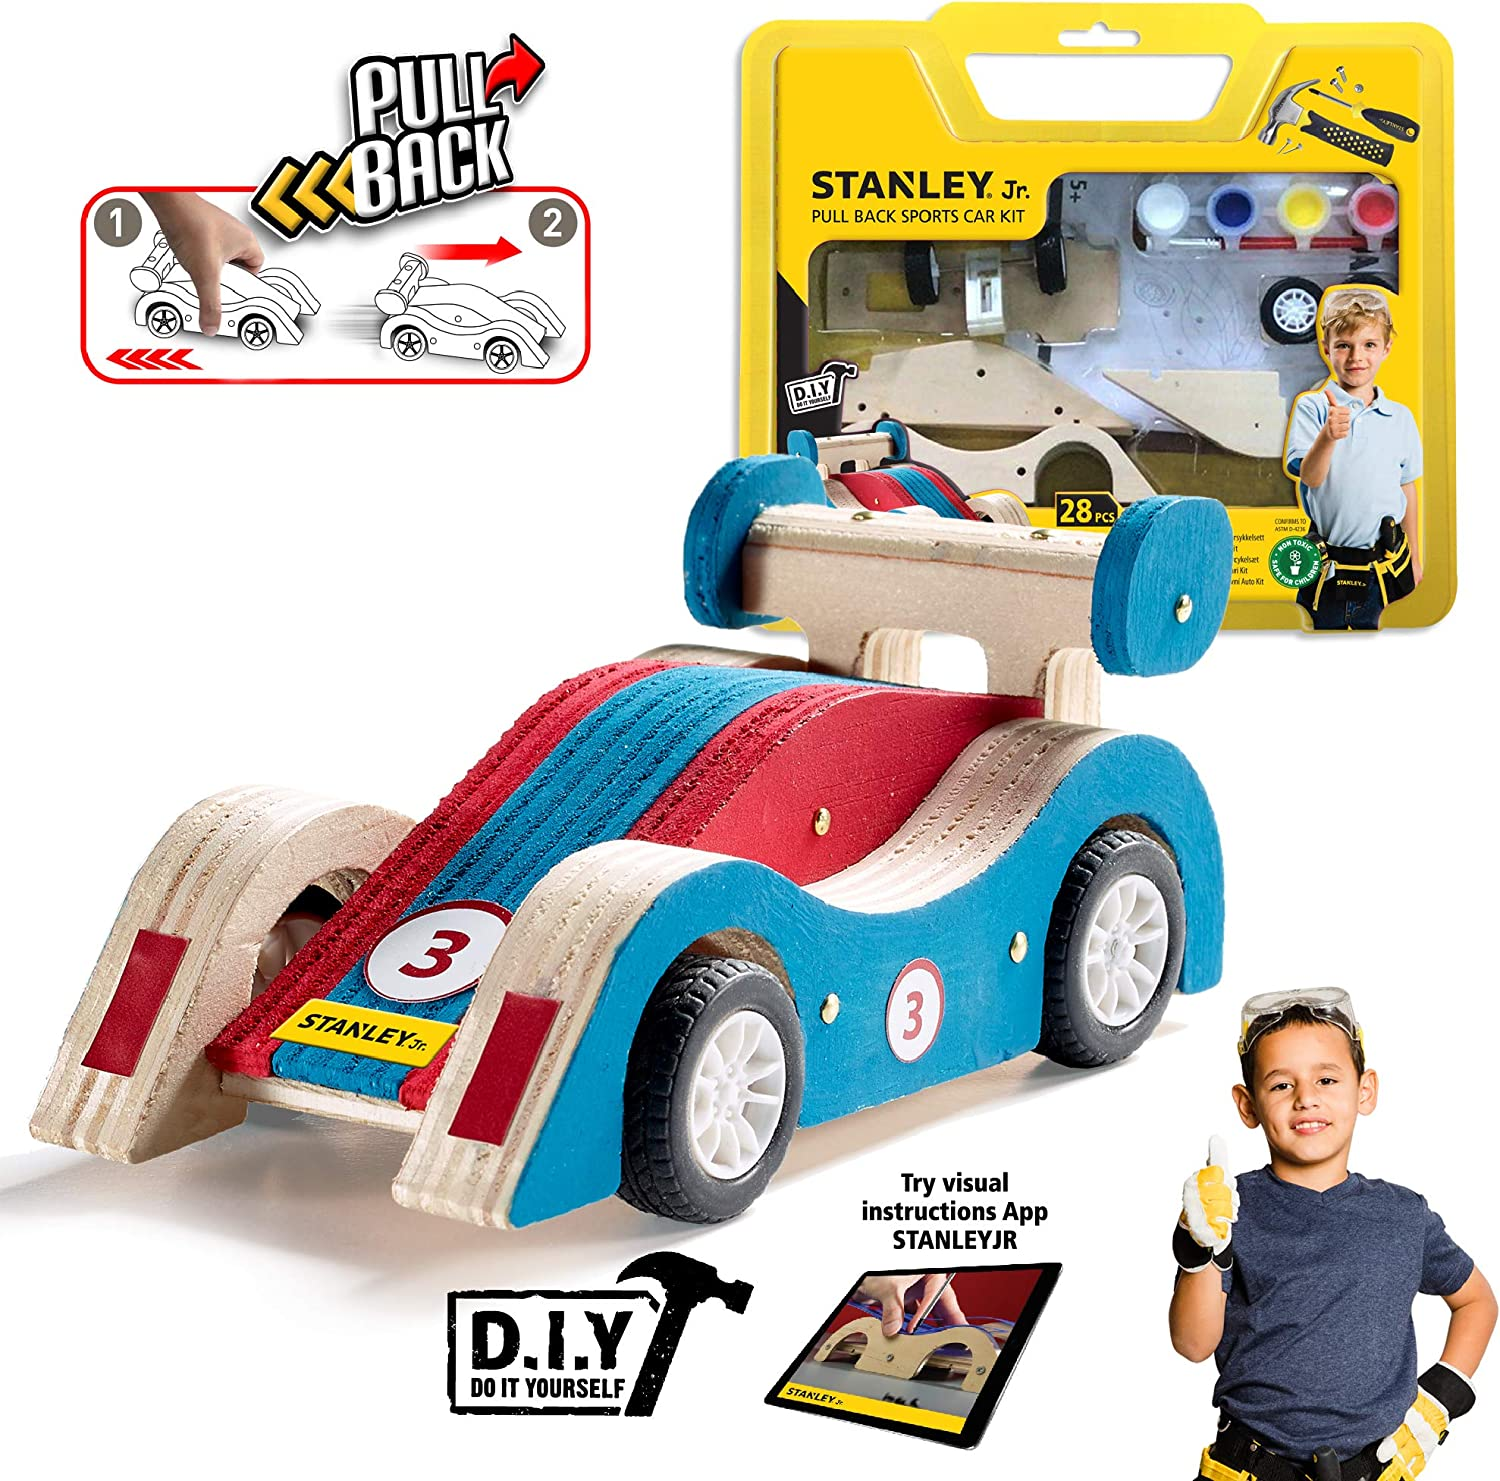 20 Best Toys and Gifts for Young Boys this Holiday Season, According to Parents and Parenting Experts